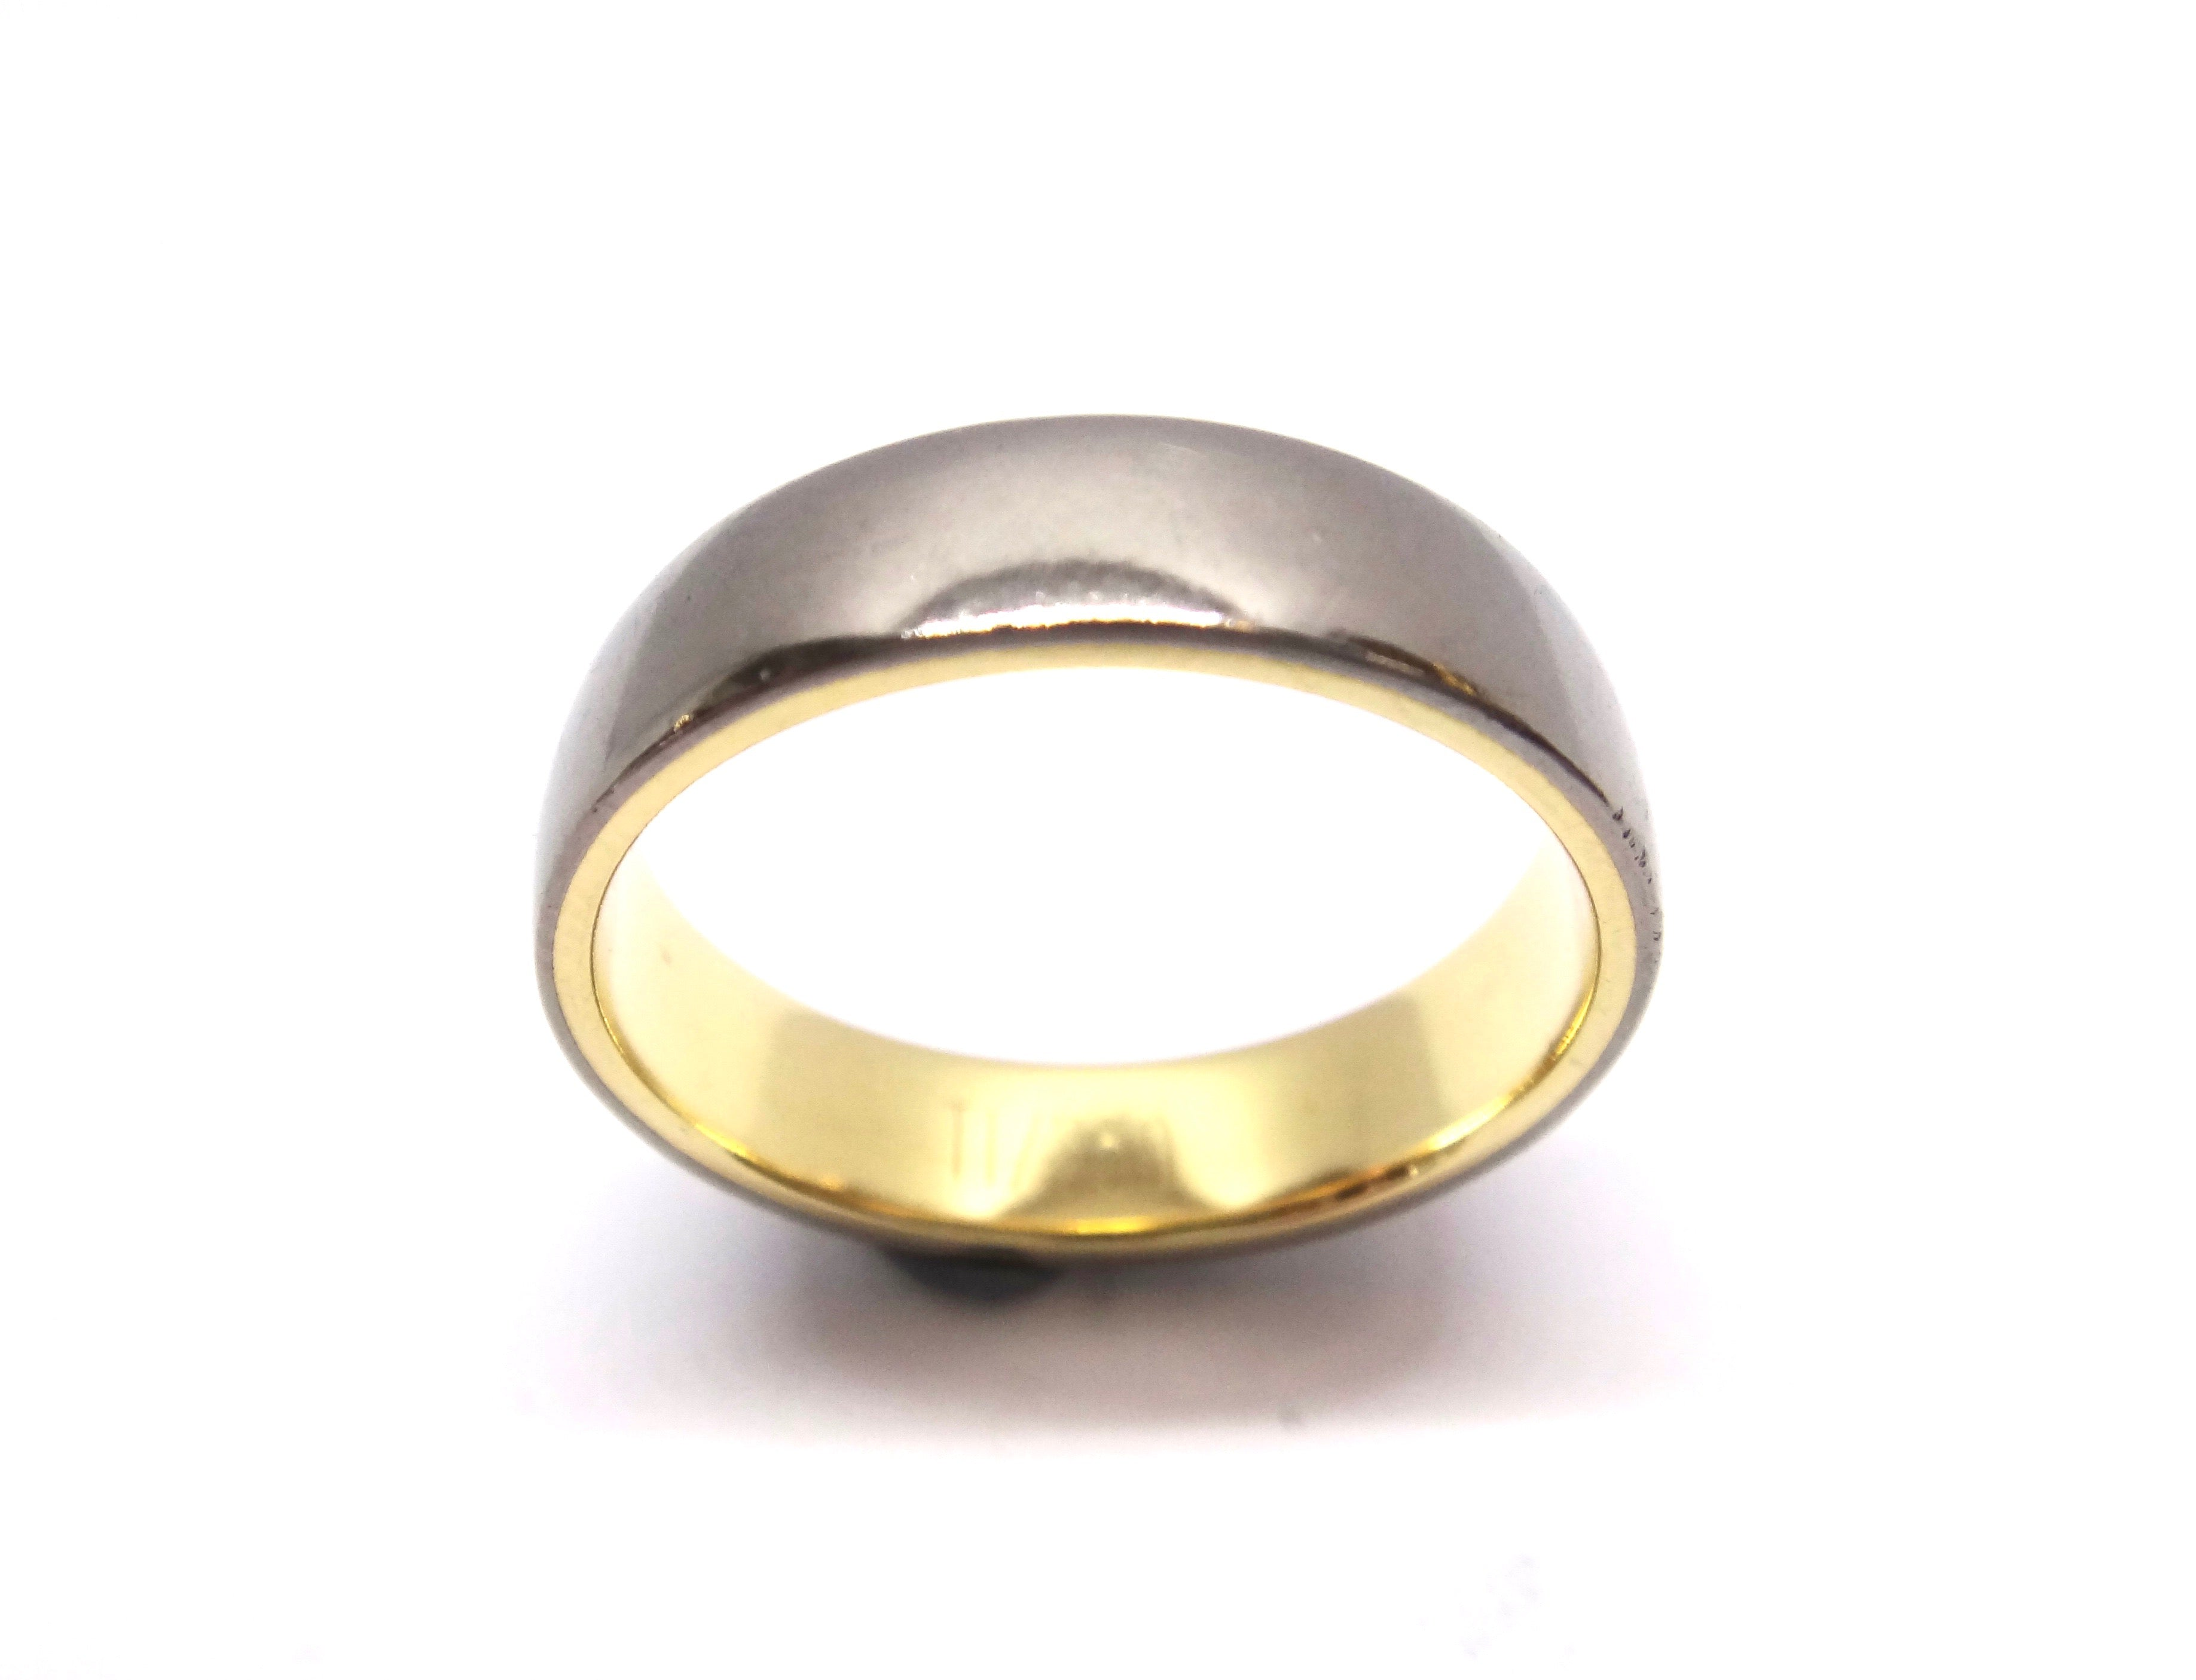 18CT Yellow GOLD & TITANIUM Wedding Band Ring